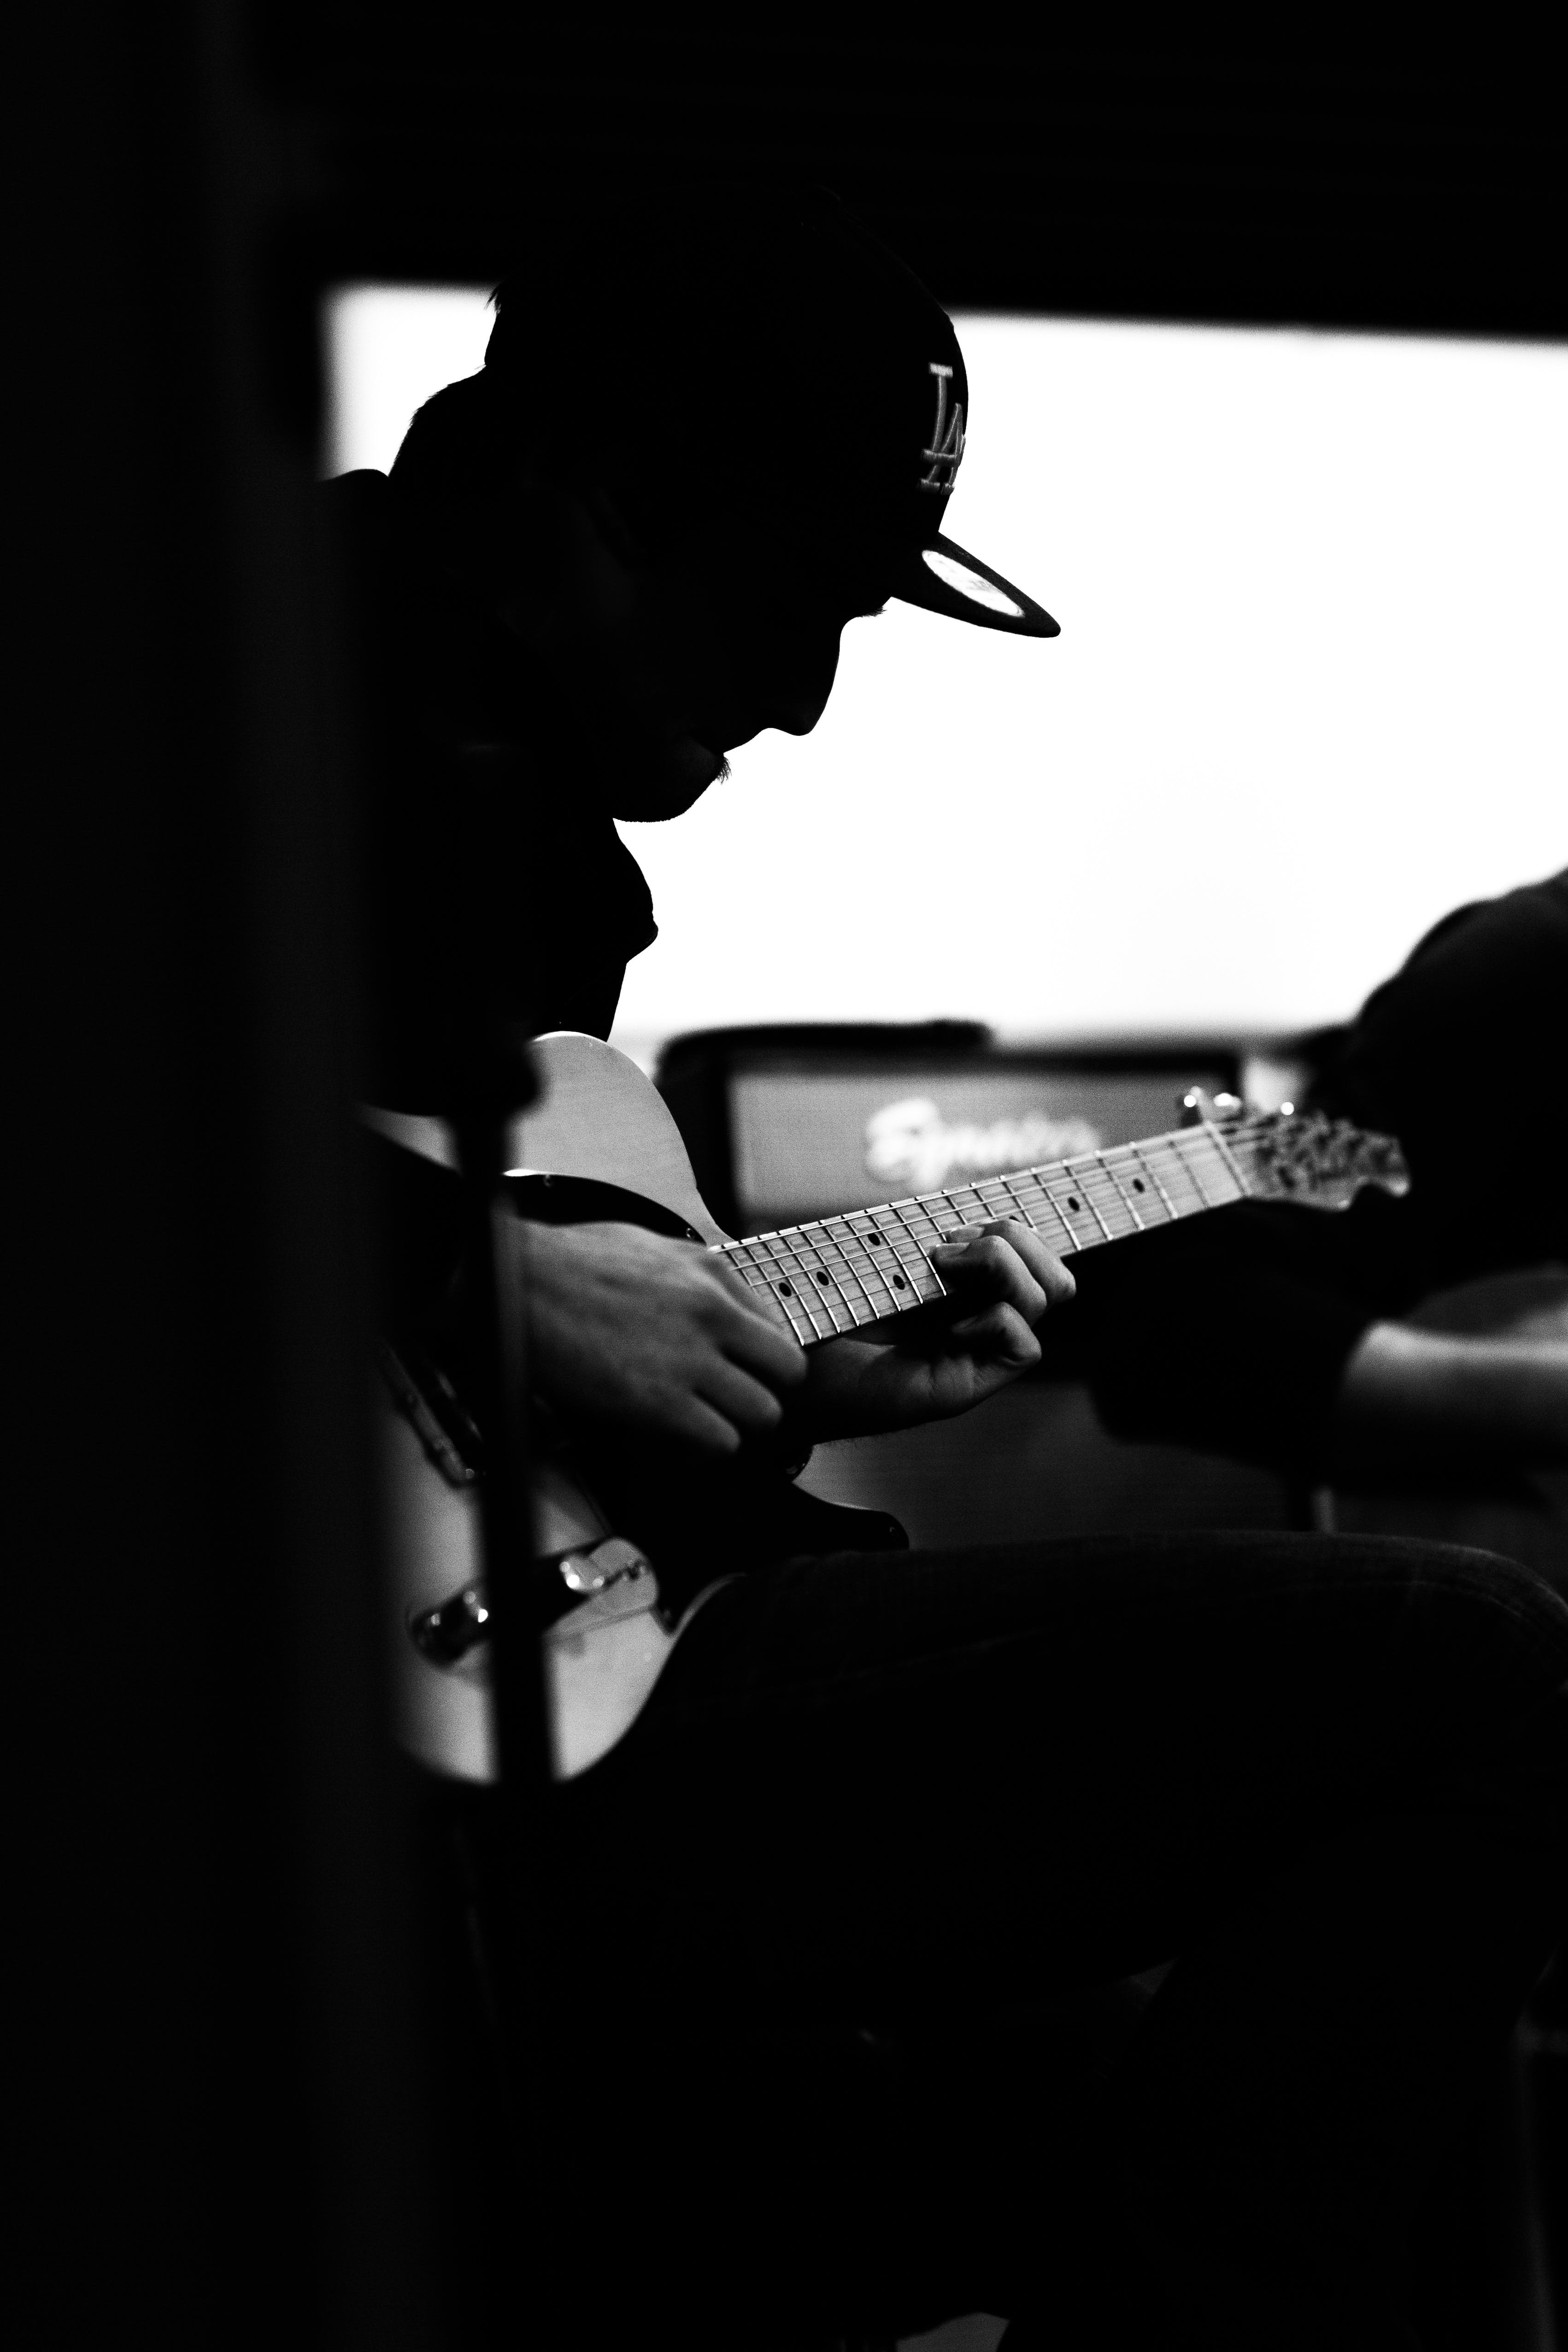 Free stock photo of amplifier, artists, black-and-white, electric guitar